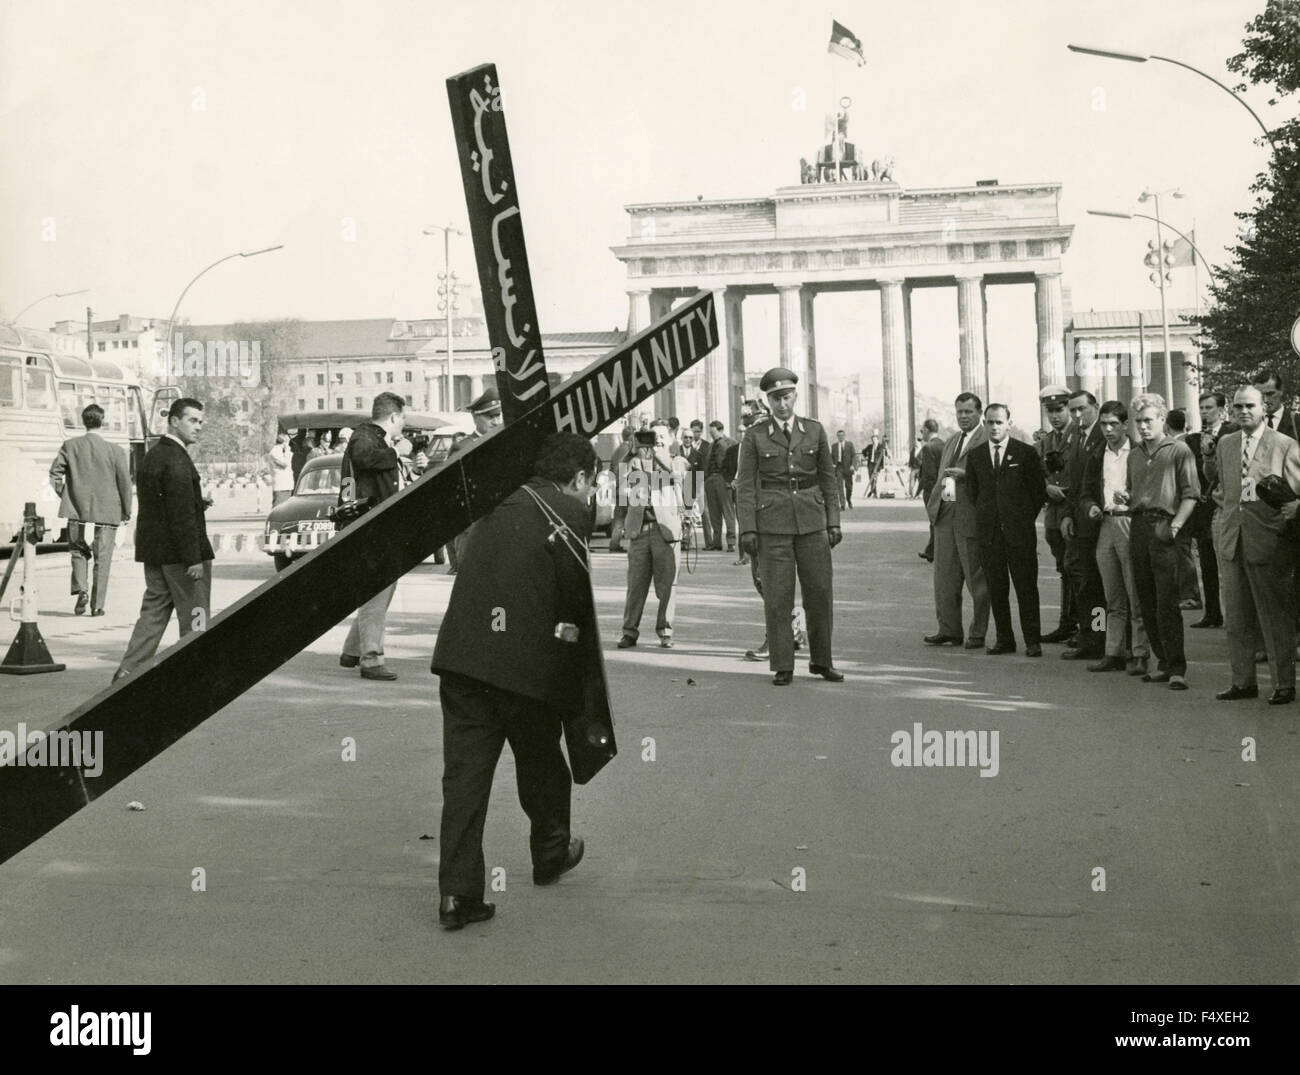 The Lebanese merchant Edmond Khayat, pilgrimage with a cross, wants to join the Soviet sector of Berlin, Germany - Stock Image